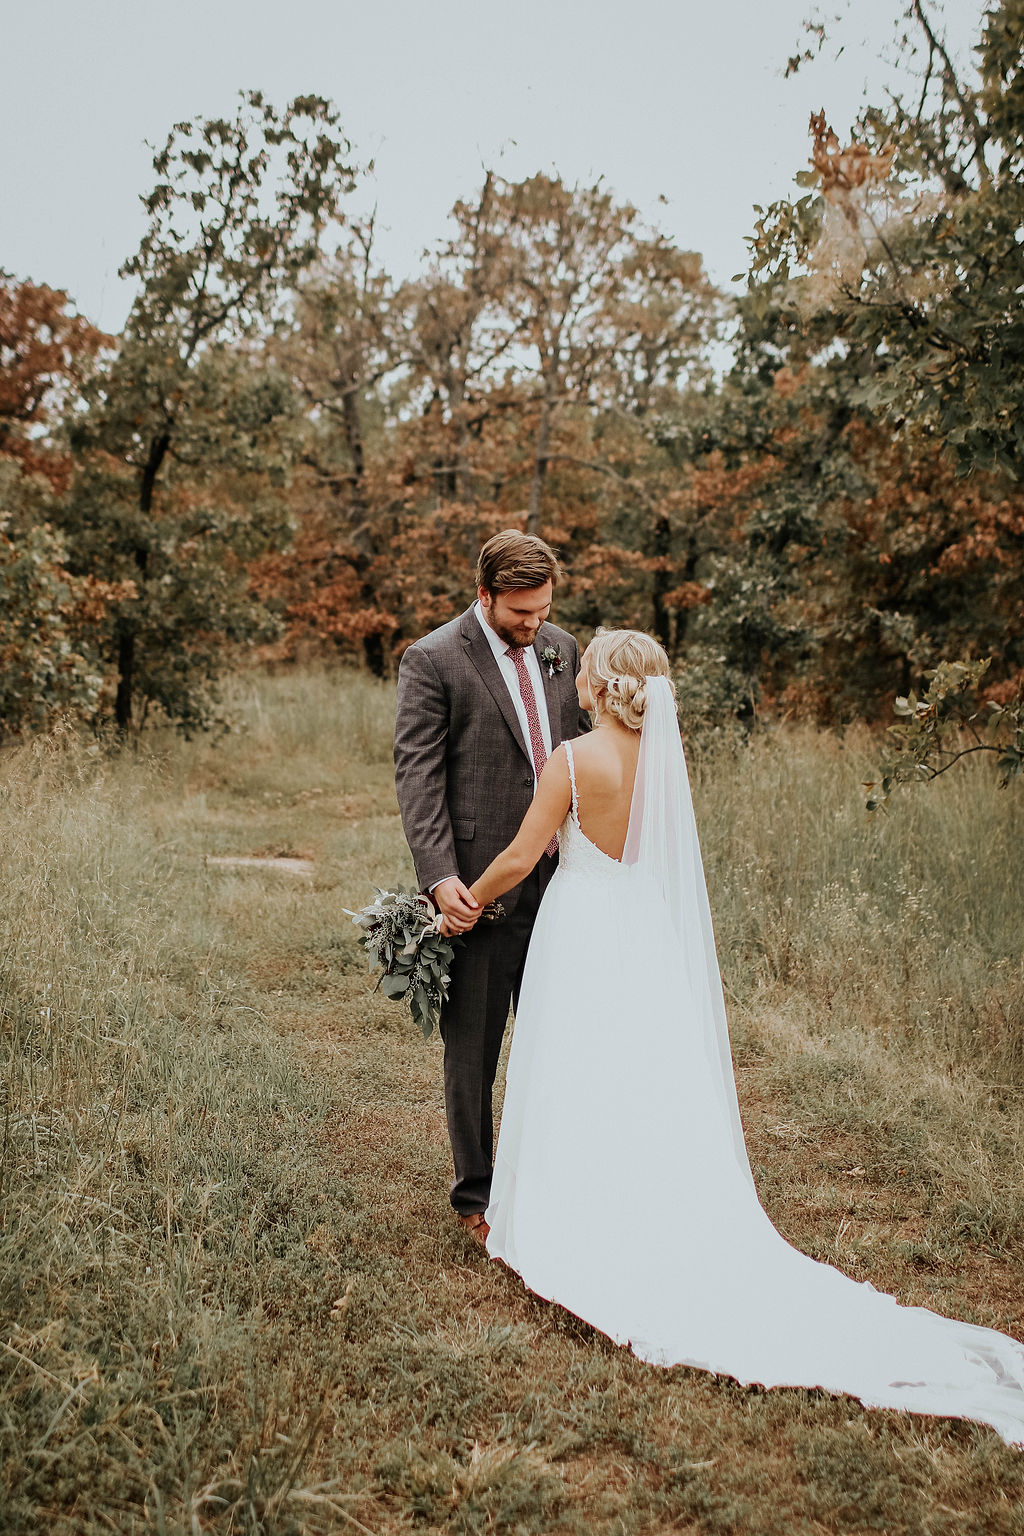 Dream Point Ranch Tulsa Wedding Venue 1f.jpg